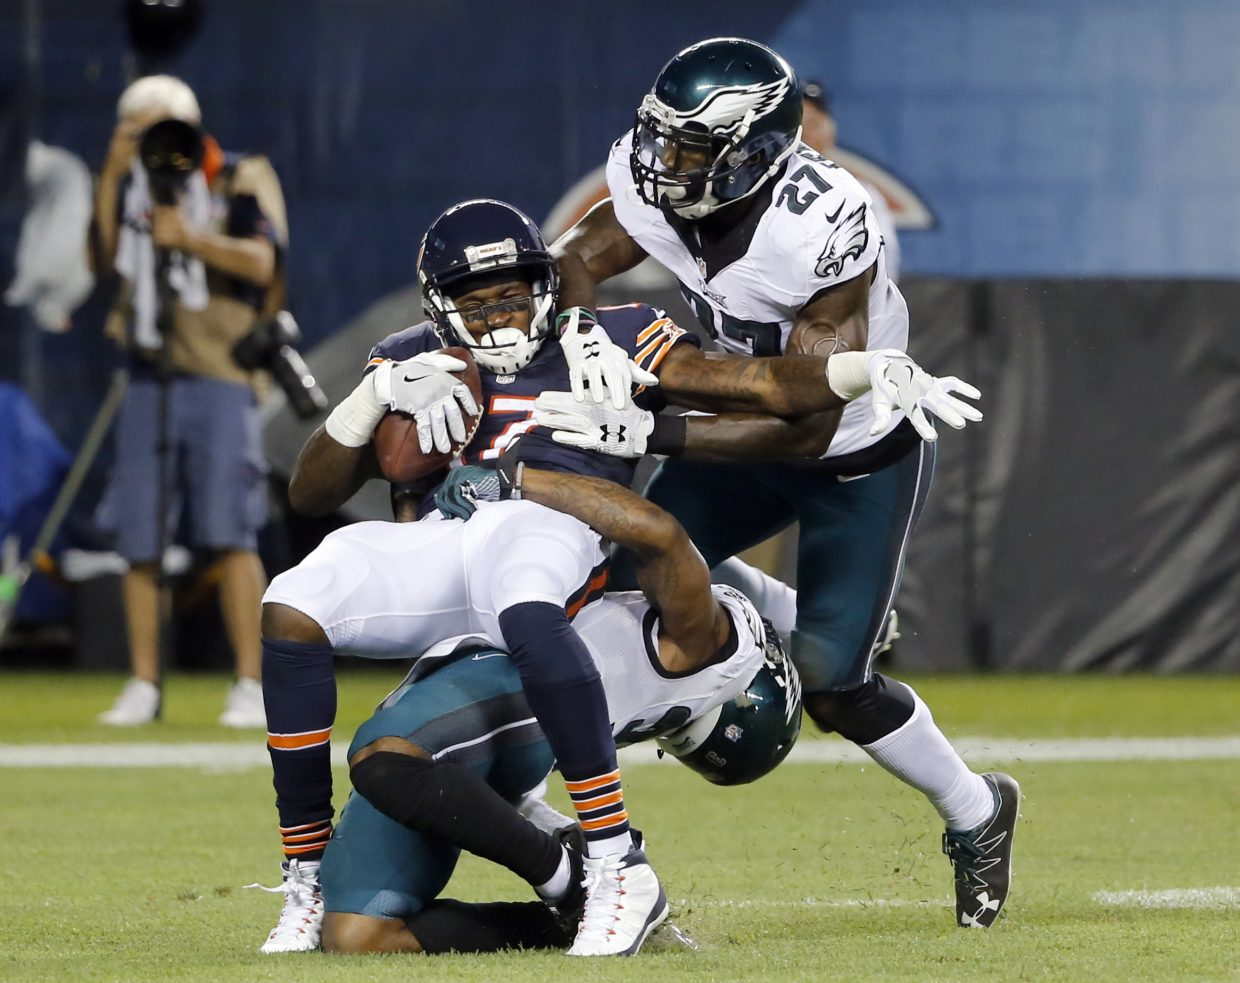 Chicago Bears wide receiver Alshon Jeffery (17) makes a catch against Philadelphia Eagles free safety Jalen Mills (31) and strong safety Malcolm Jenkins (27) during the first half of an NFL football game, Monday, Sept. 19, 2016, in Chicago. (AP Photo/Charles Rex Arbogast)